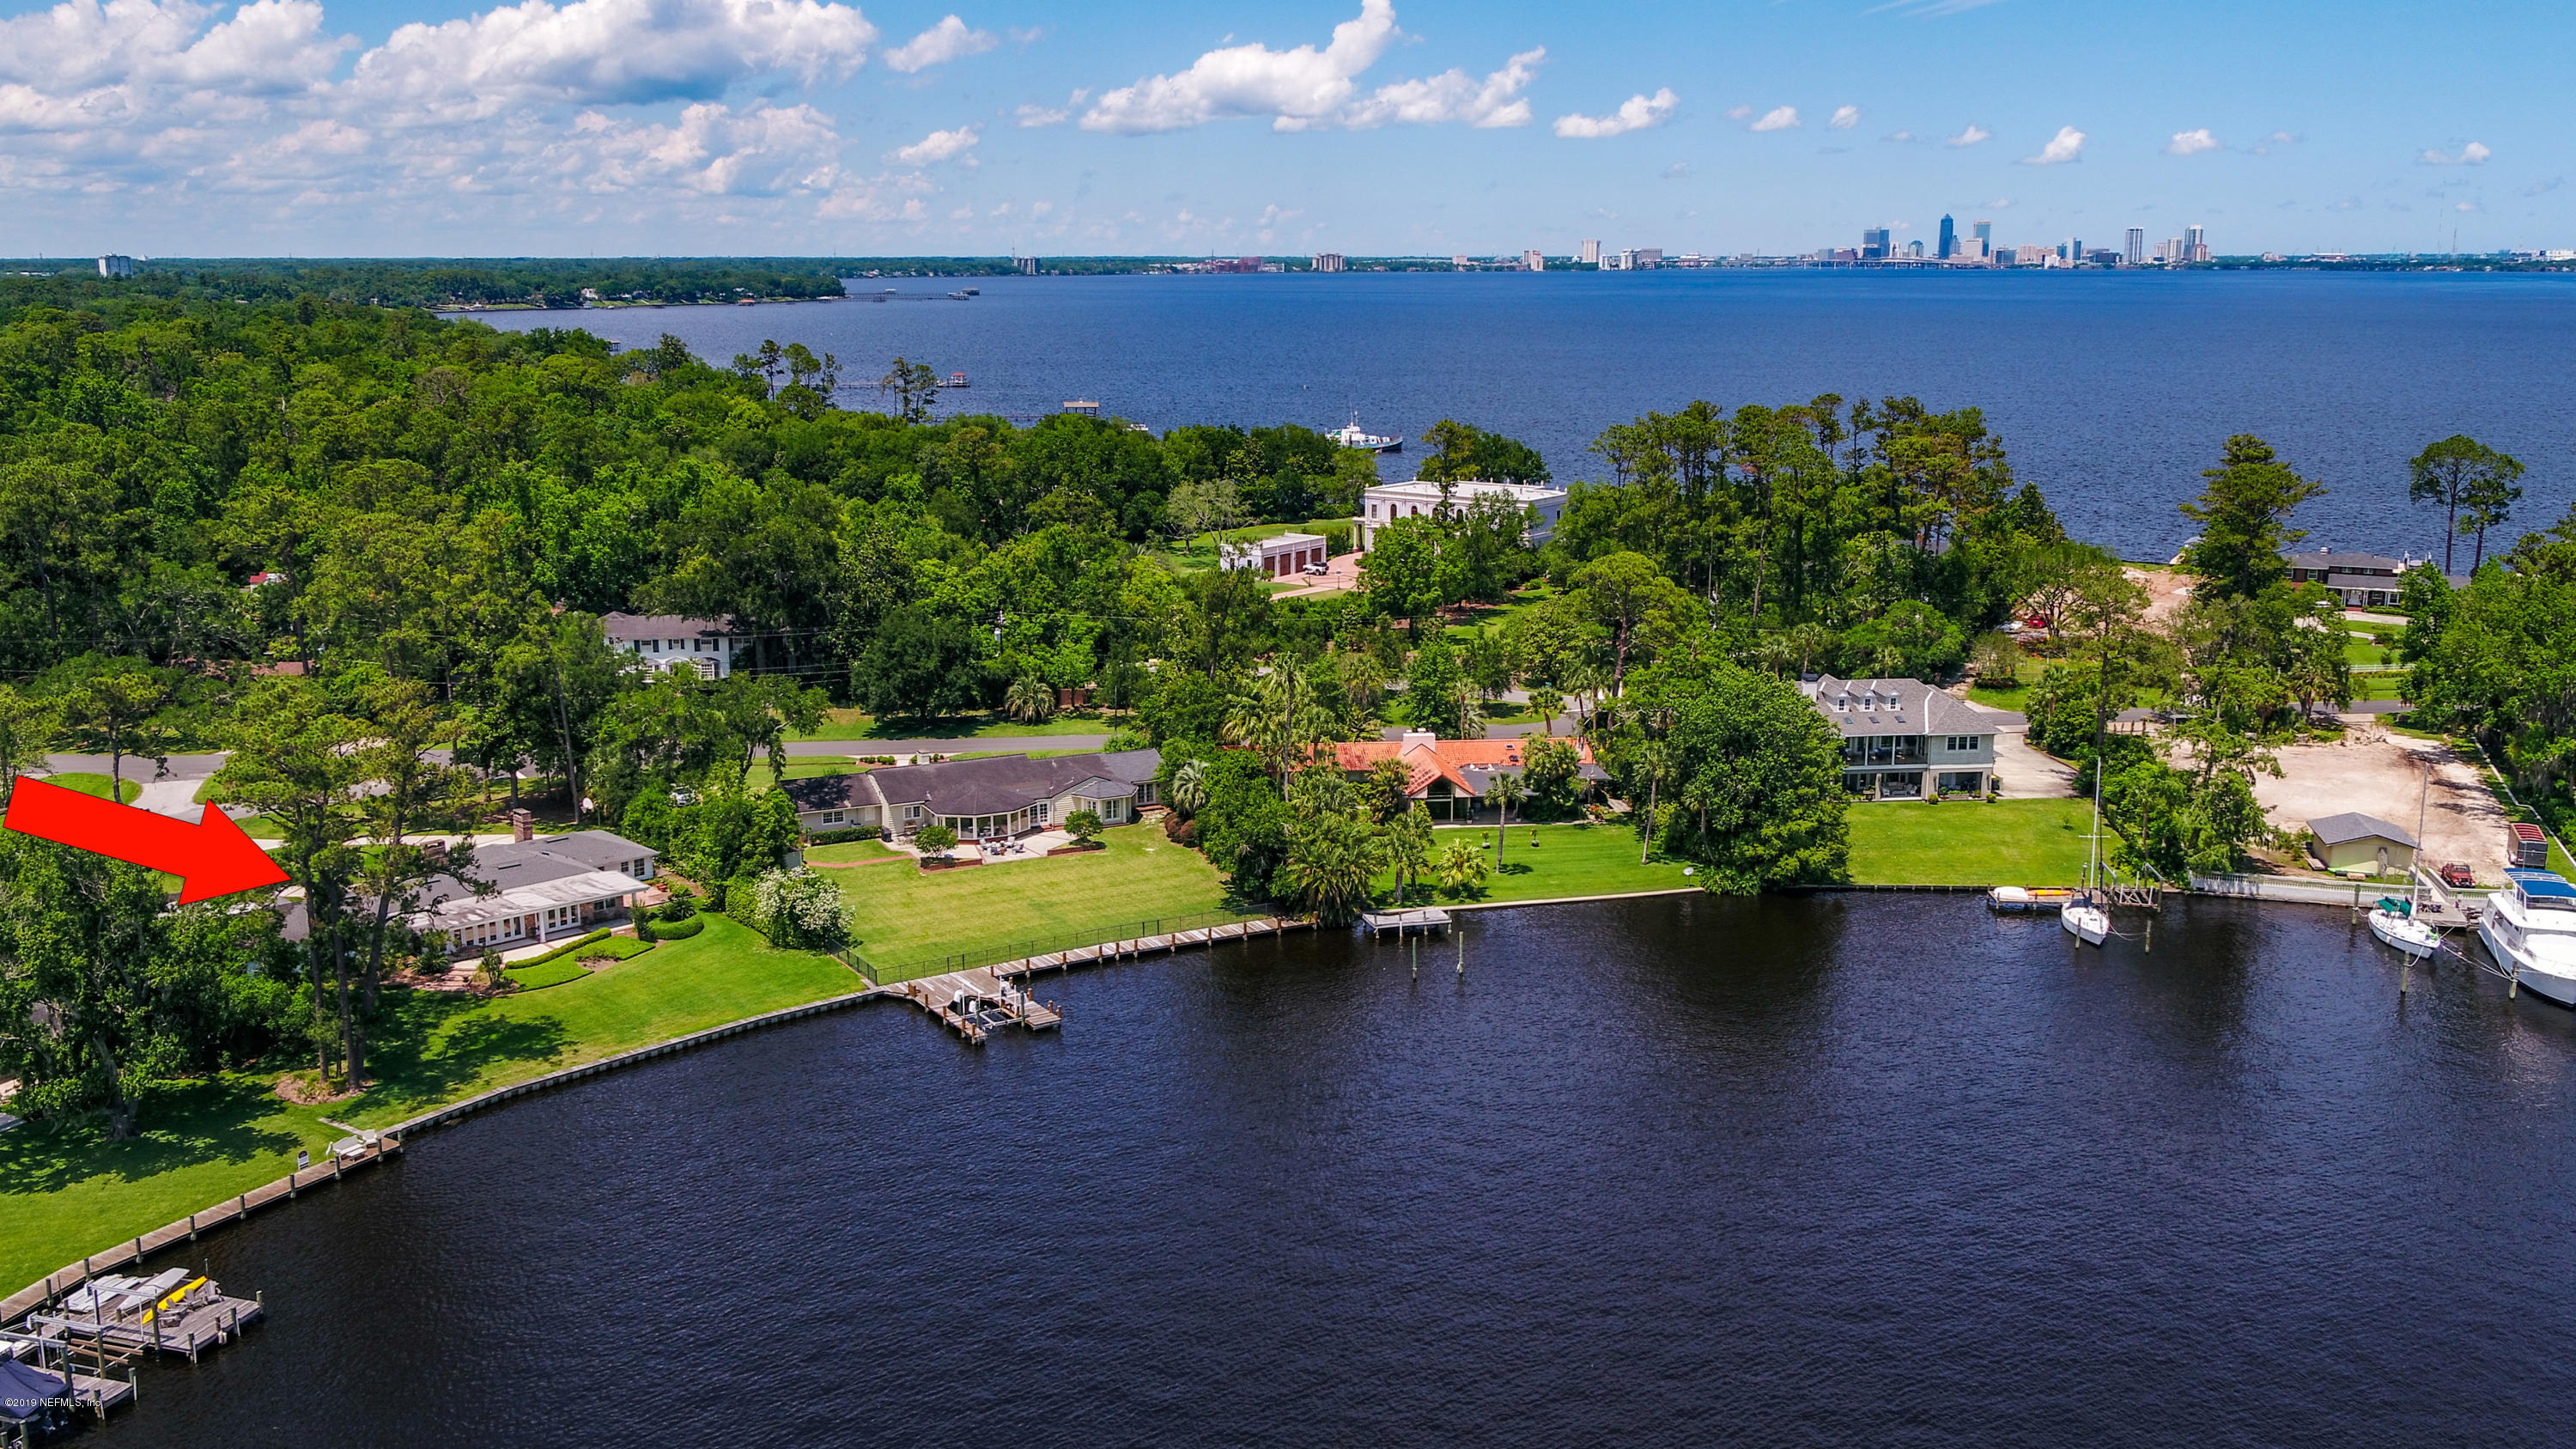 5015 PIRATES COVE, JACKSONVILLE, FLORIDA 32210, 4 Bedrooms Bedrooms, ,4 BathroomsBathrooms,Residential,For sale,PIRATES COVE,993056